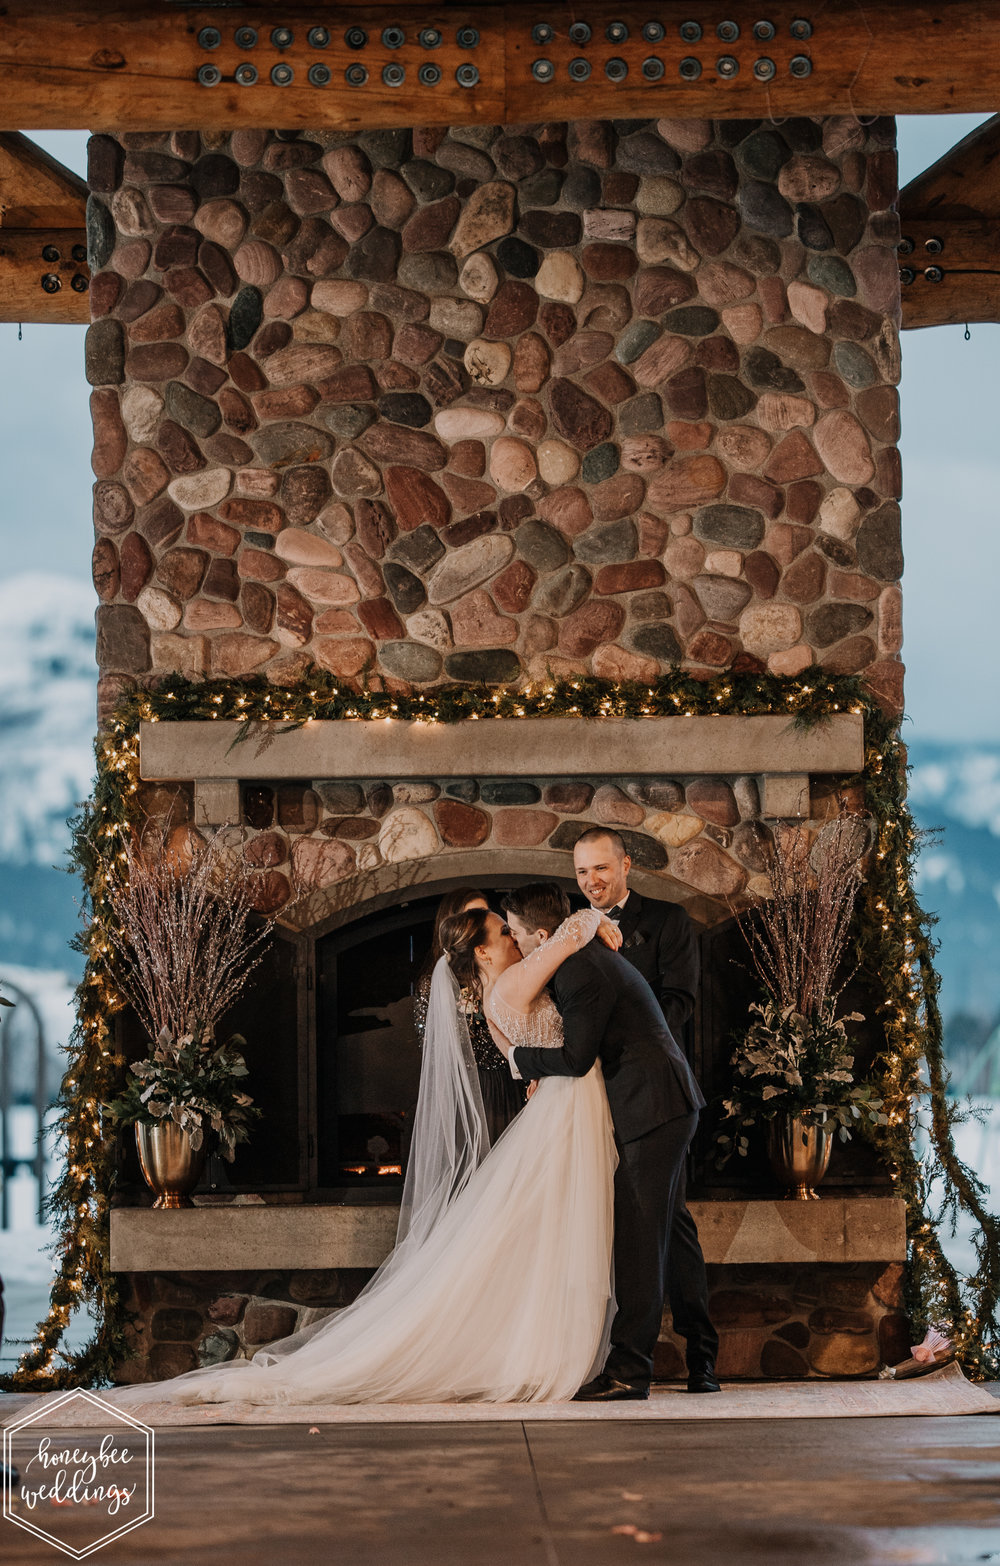 0258Montana Wedding Photographer_Montana winter wedding_Wedding at Fort Missoula_Meri & Carter_December 31, 2015-440.jpg